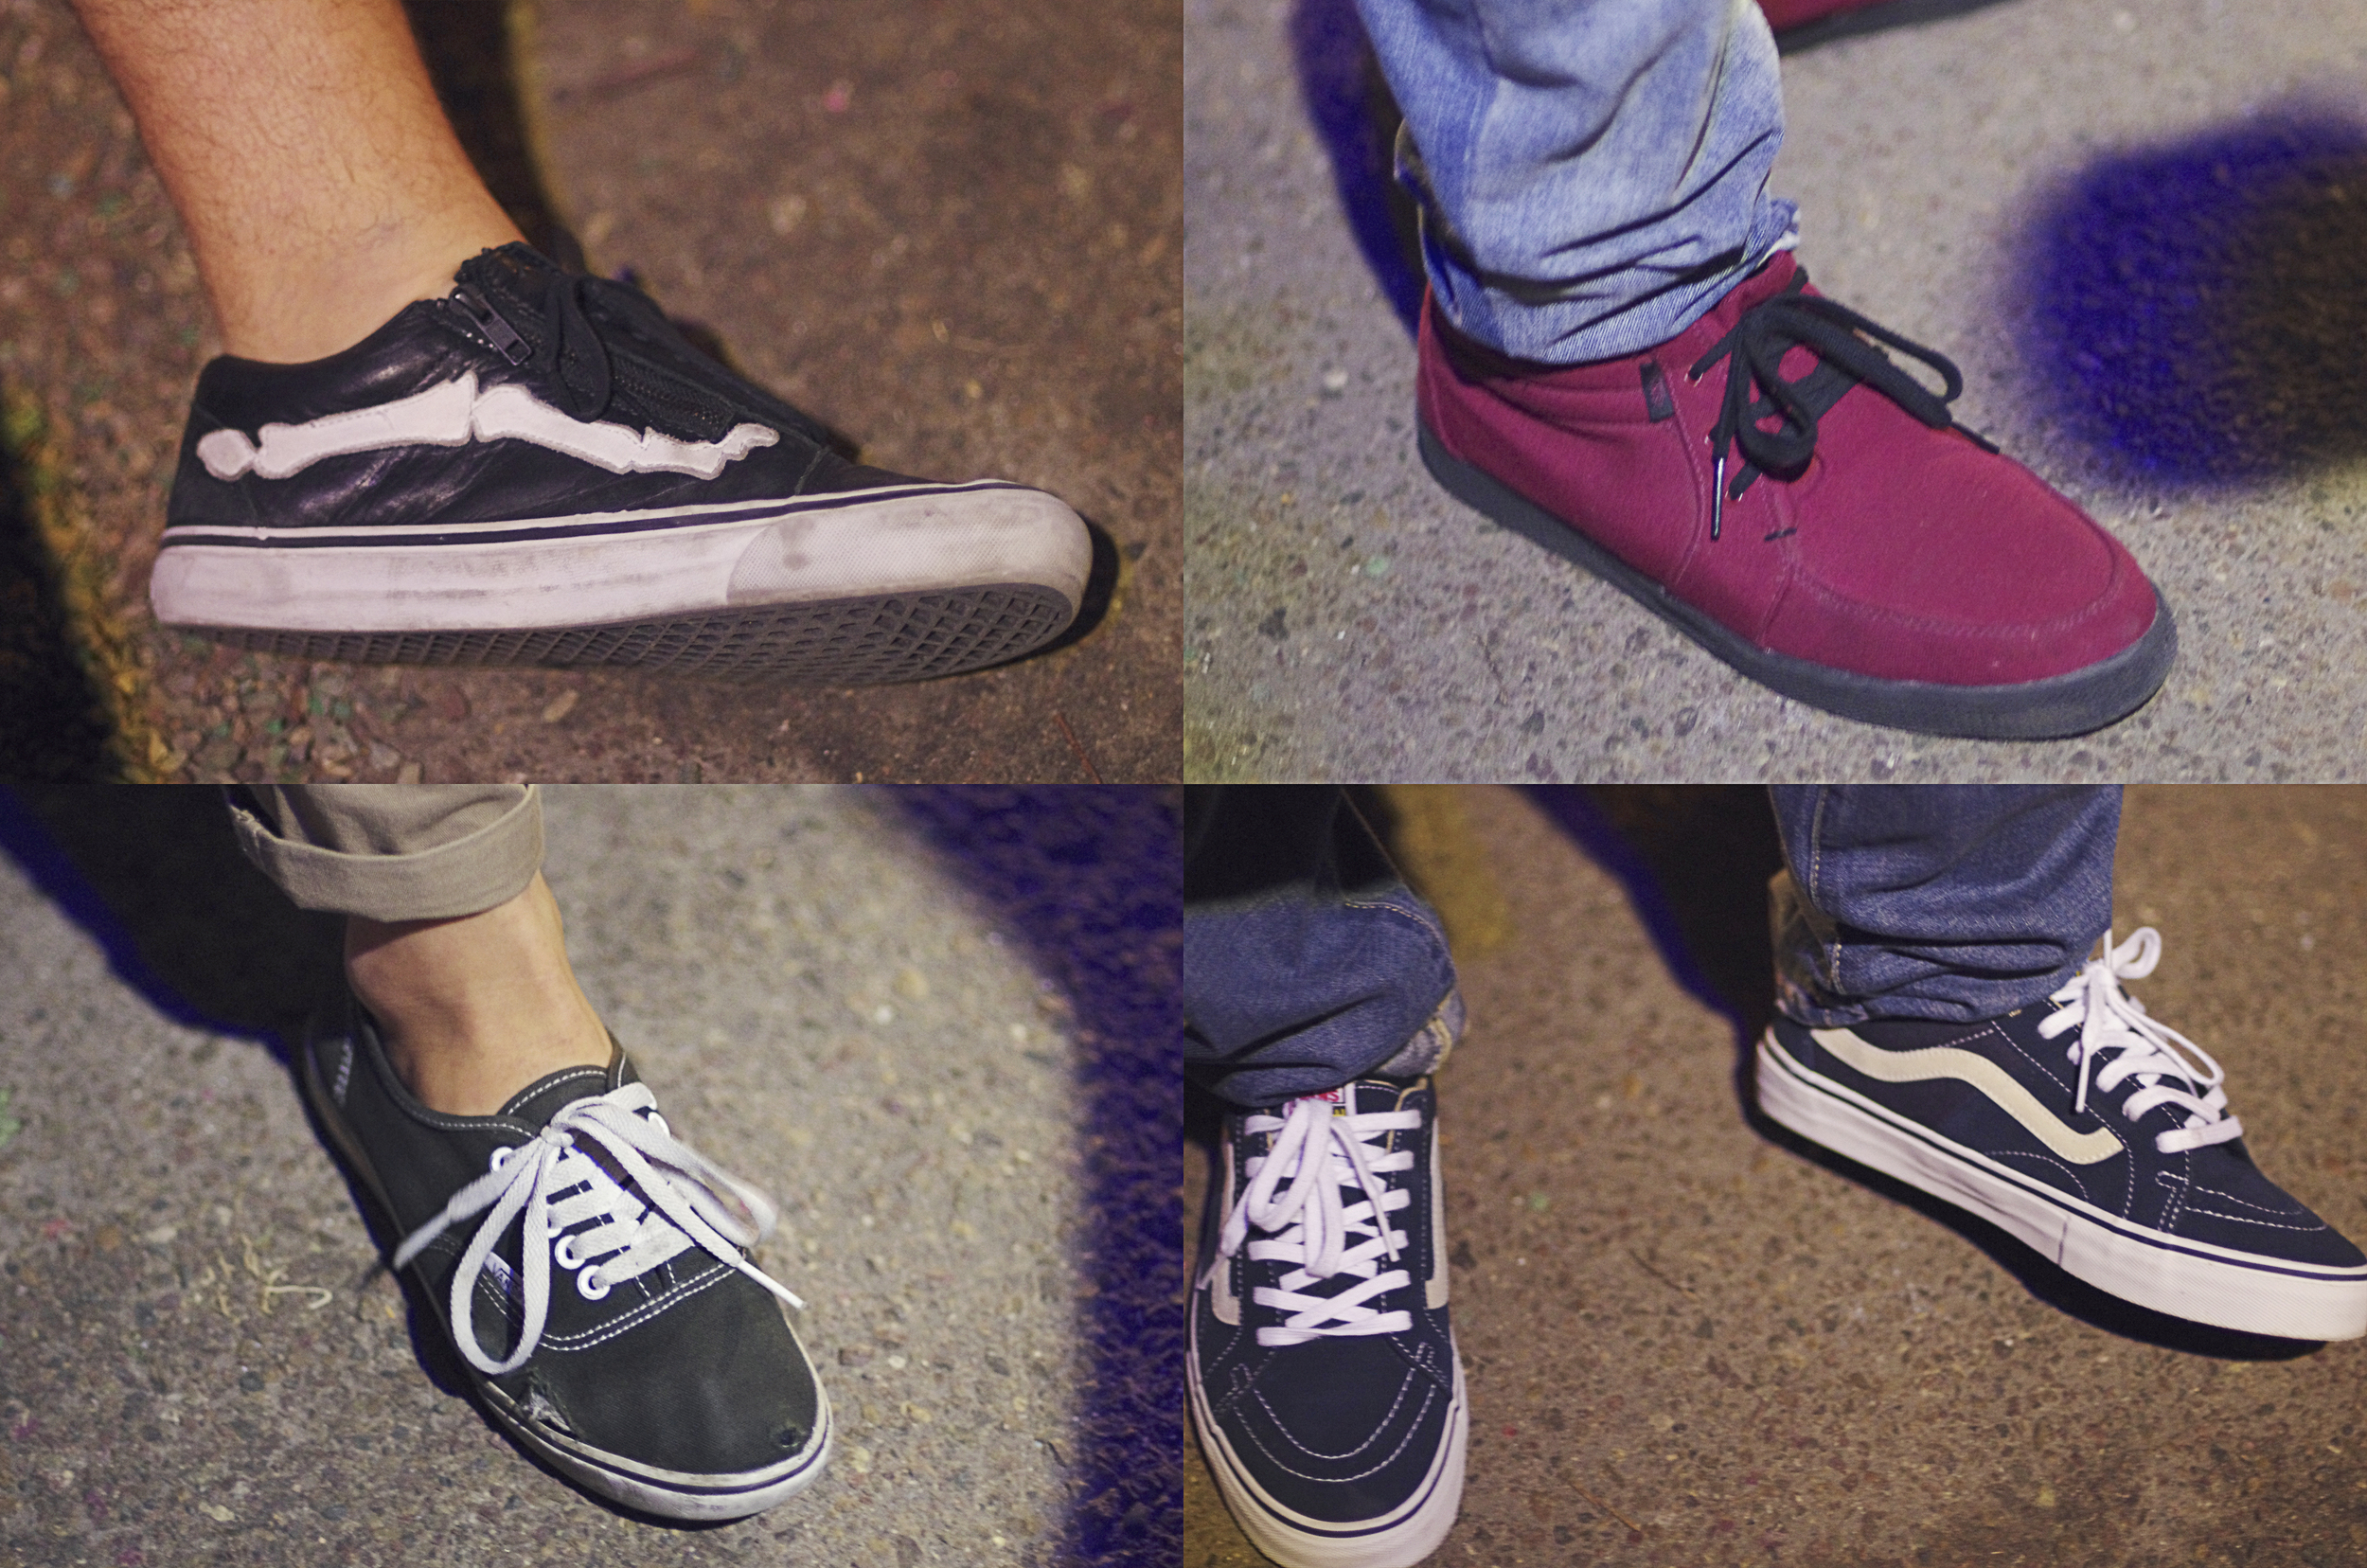 Of course you can't make it out to DIRTY FKN VANS without wearing Vans.